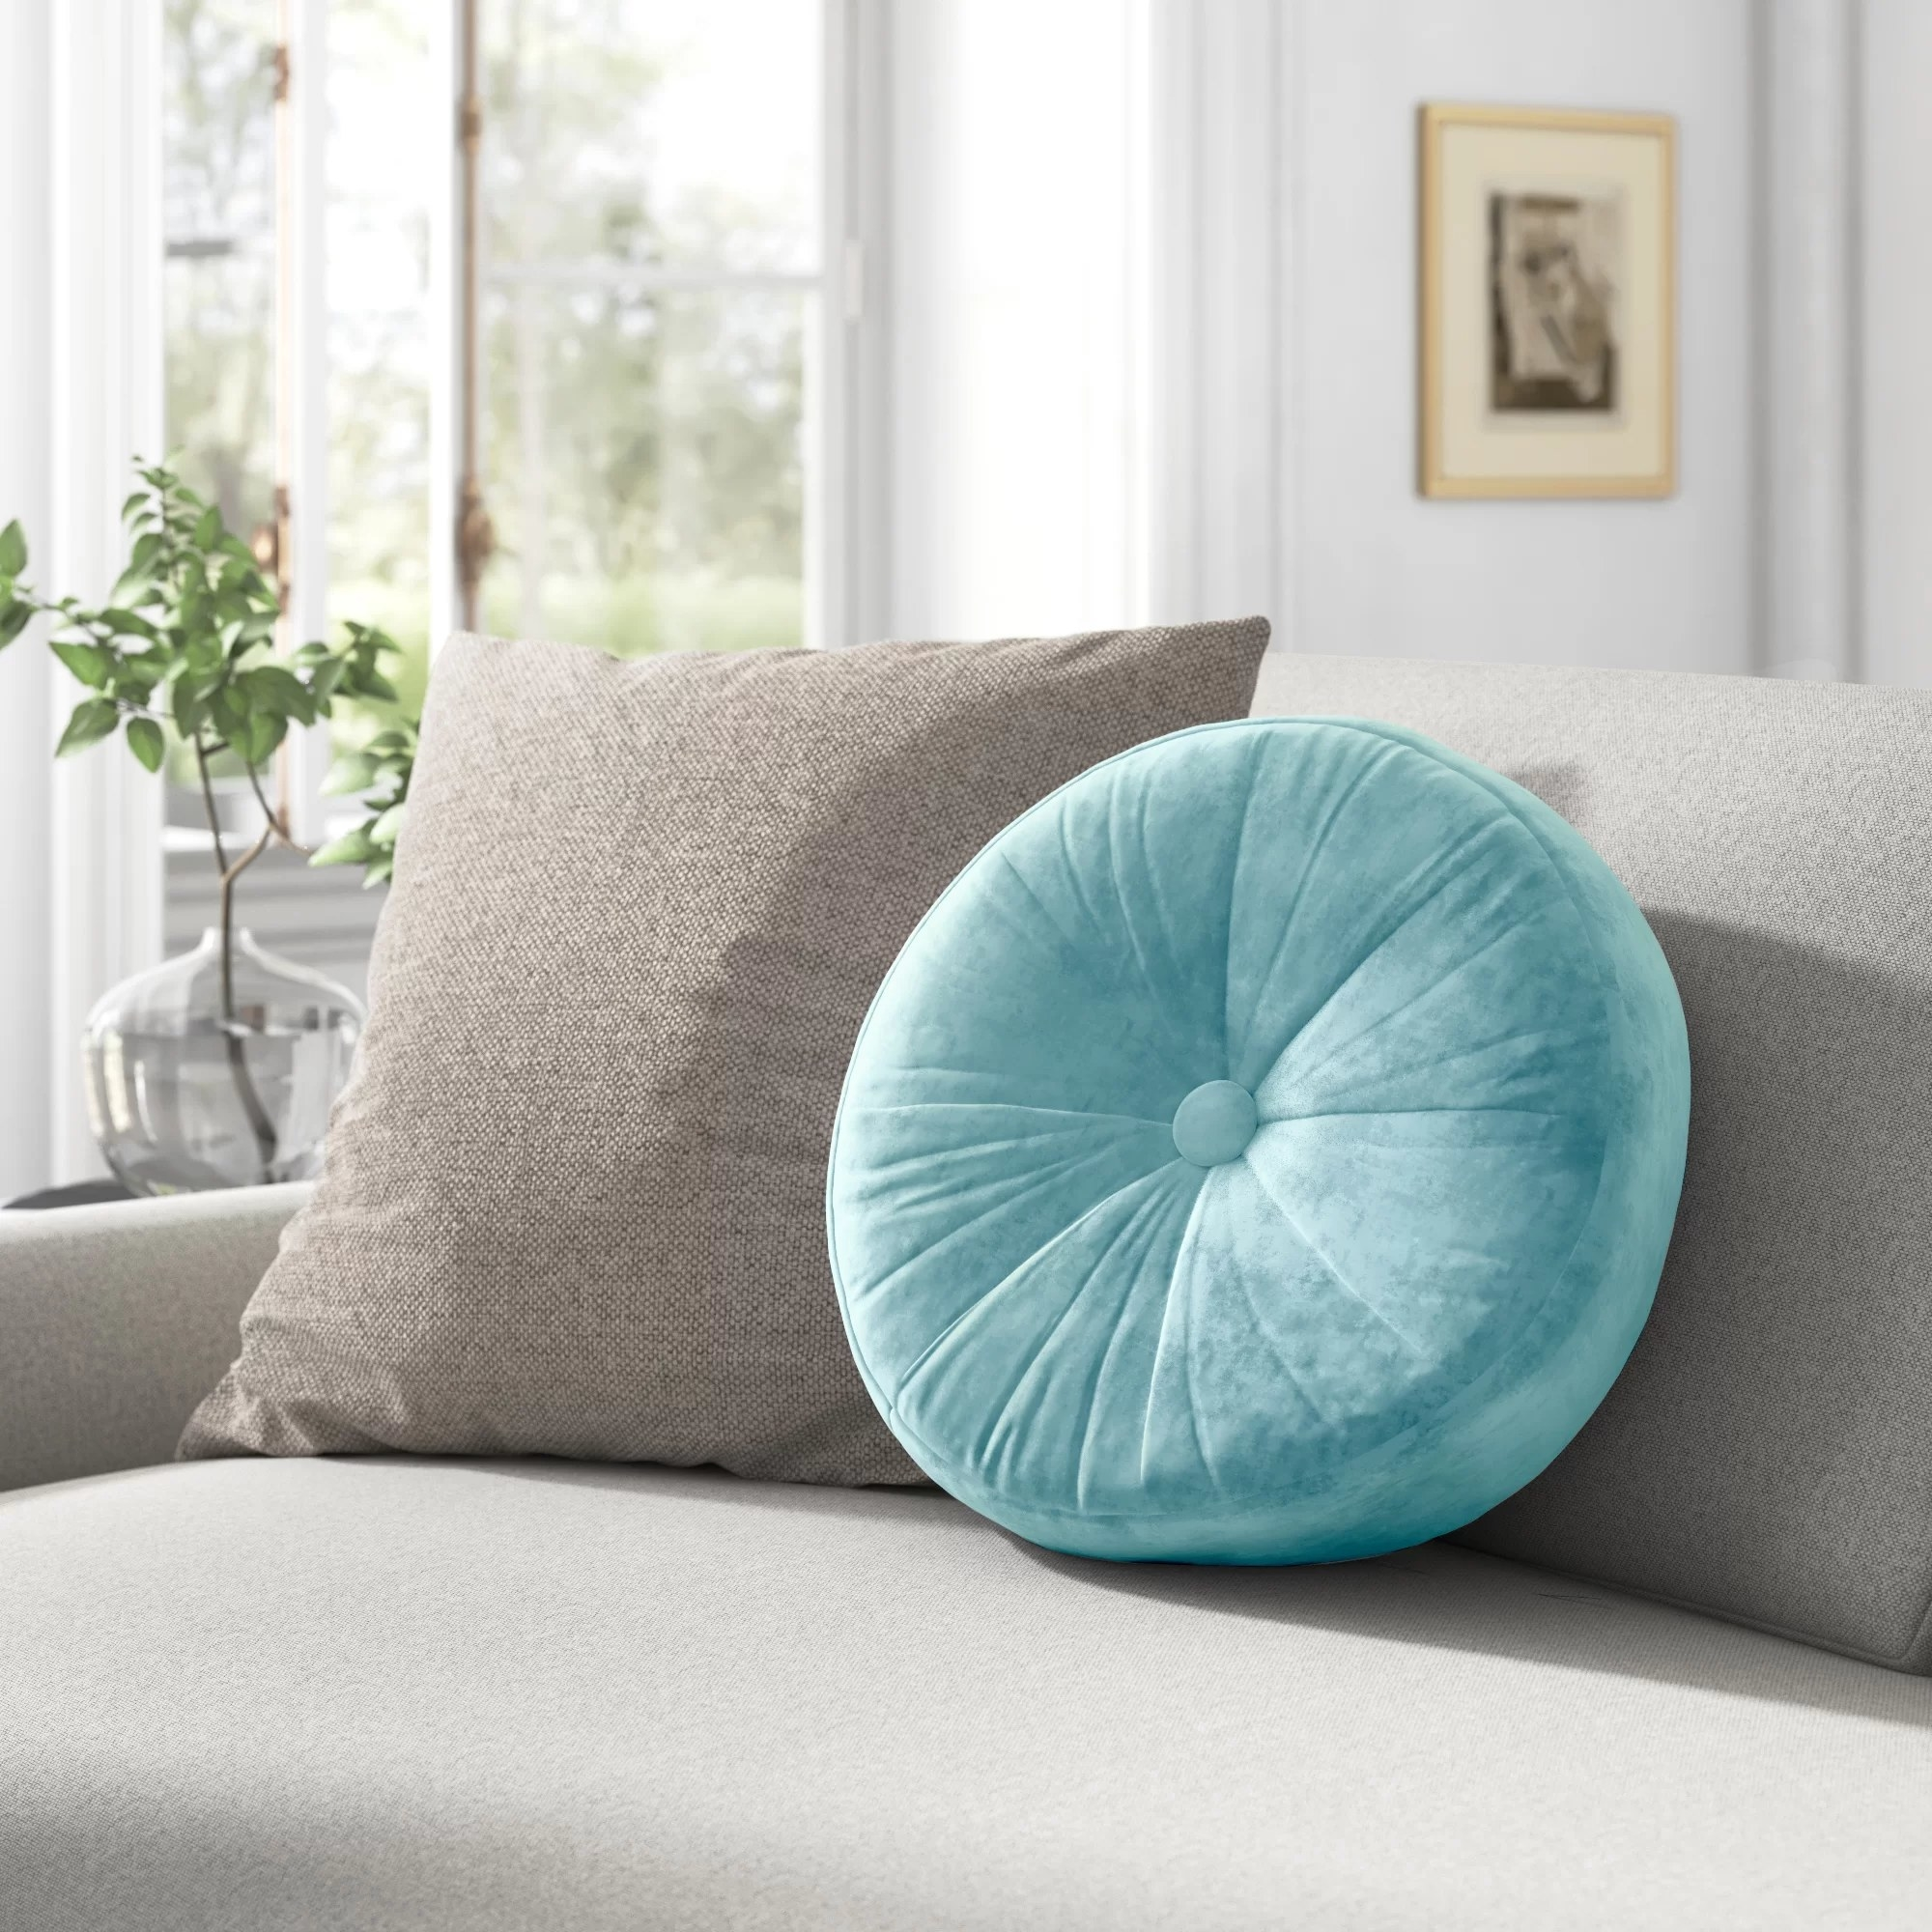 The round pillow with a button in the center on a couch